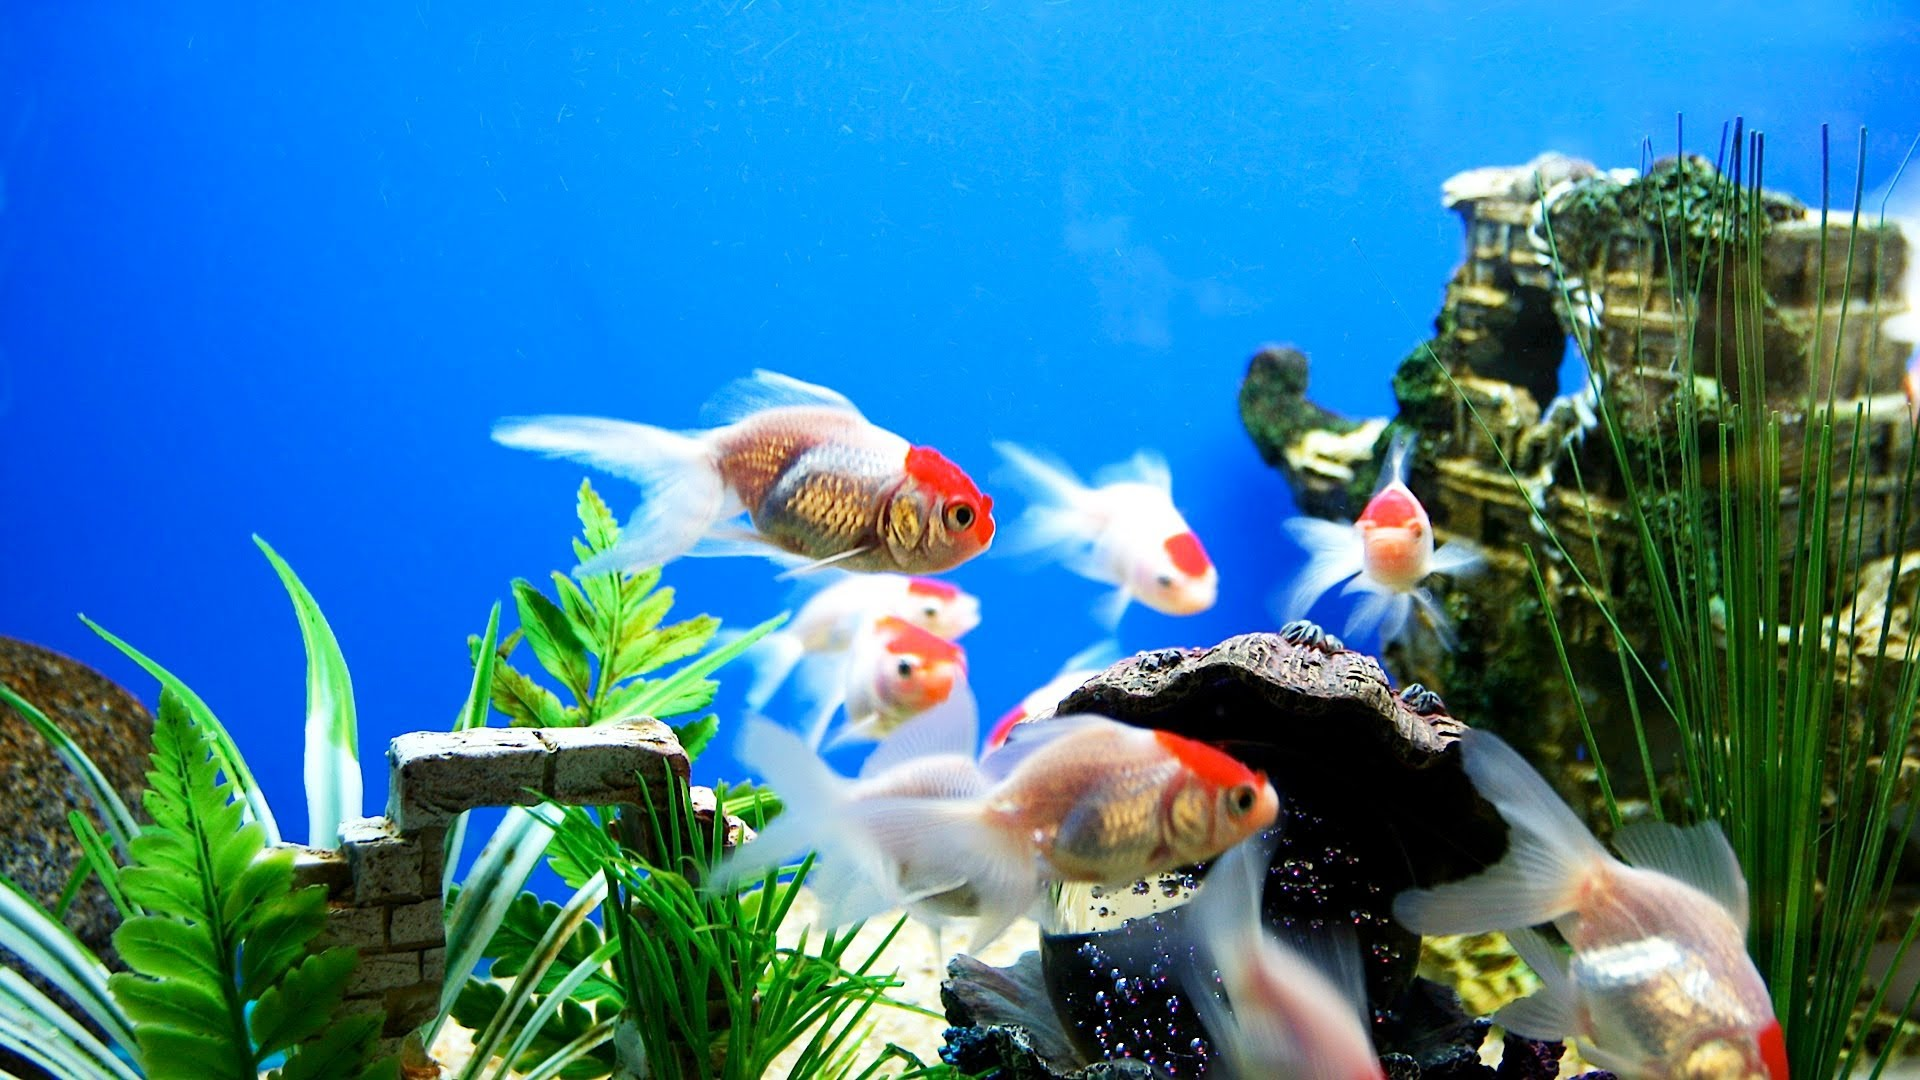 Aquarium Decorations for Fishes 872.38 Kb